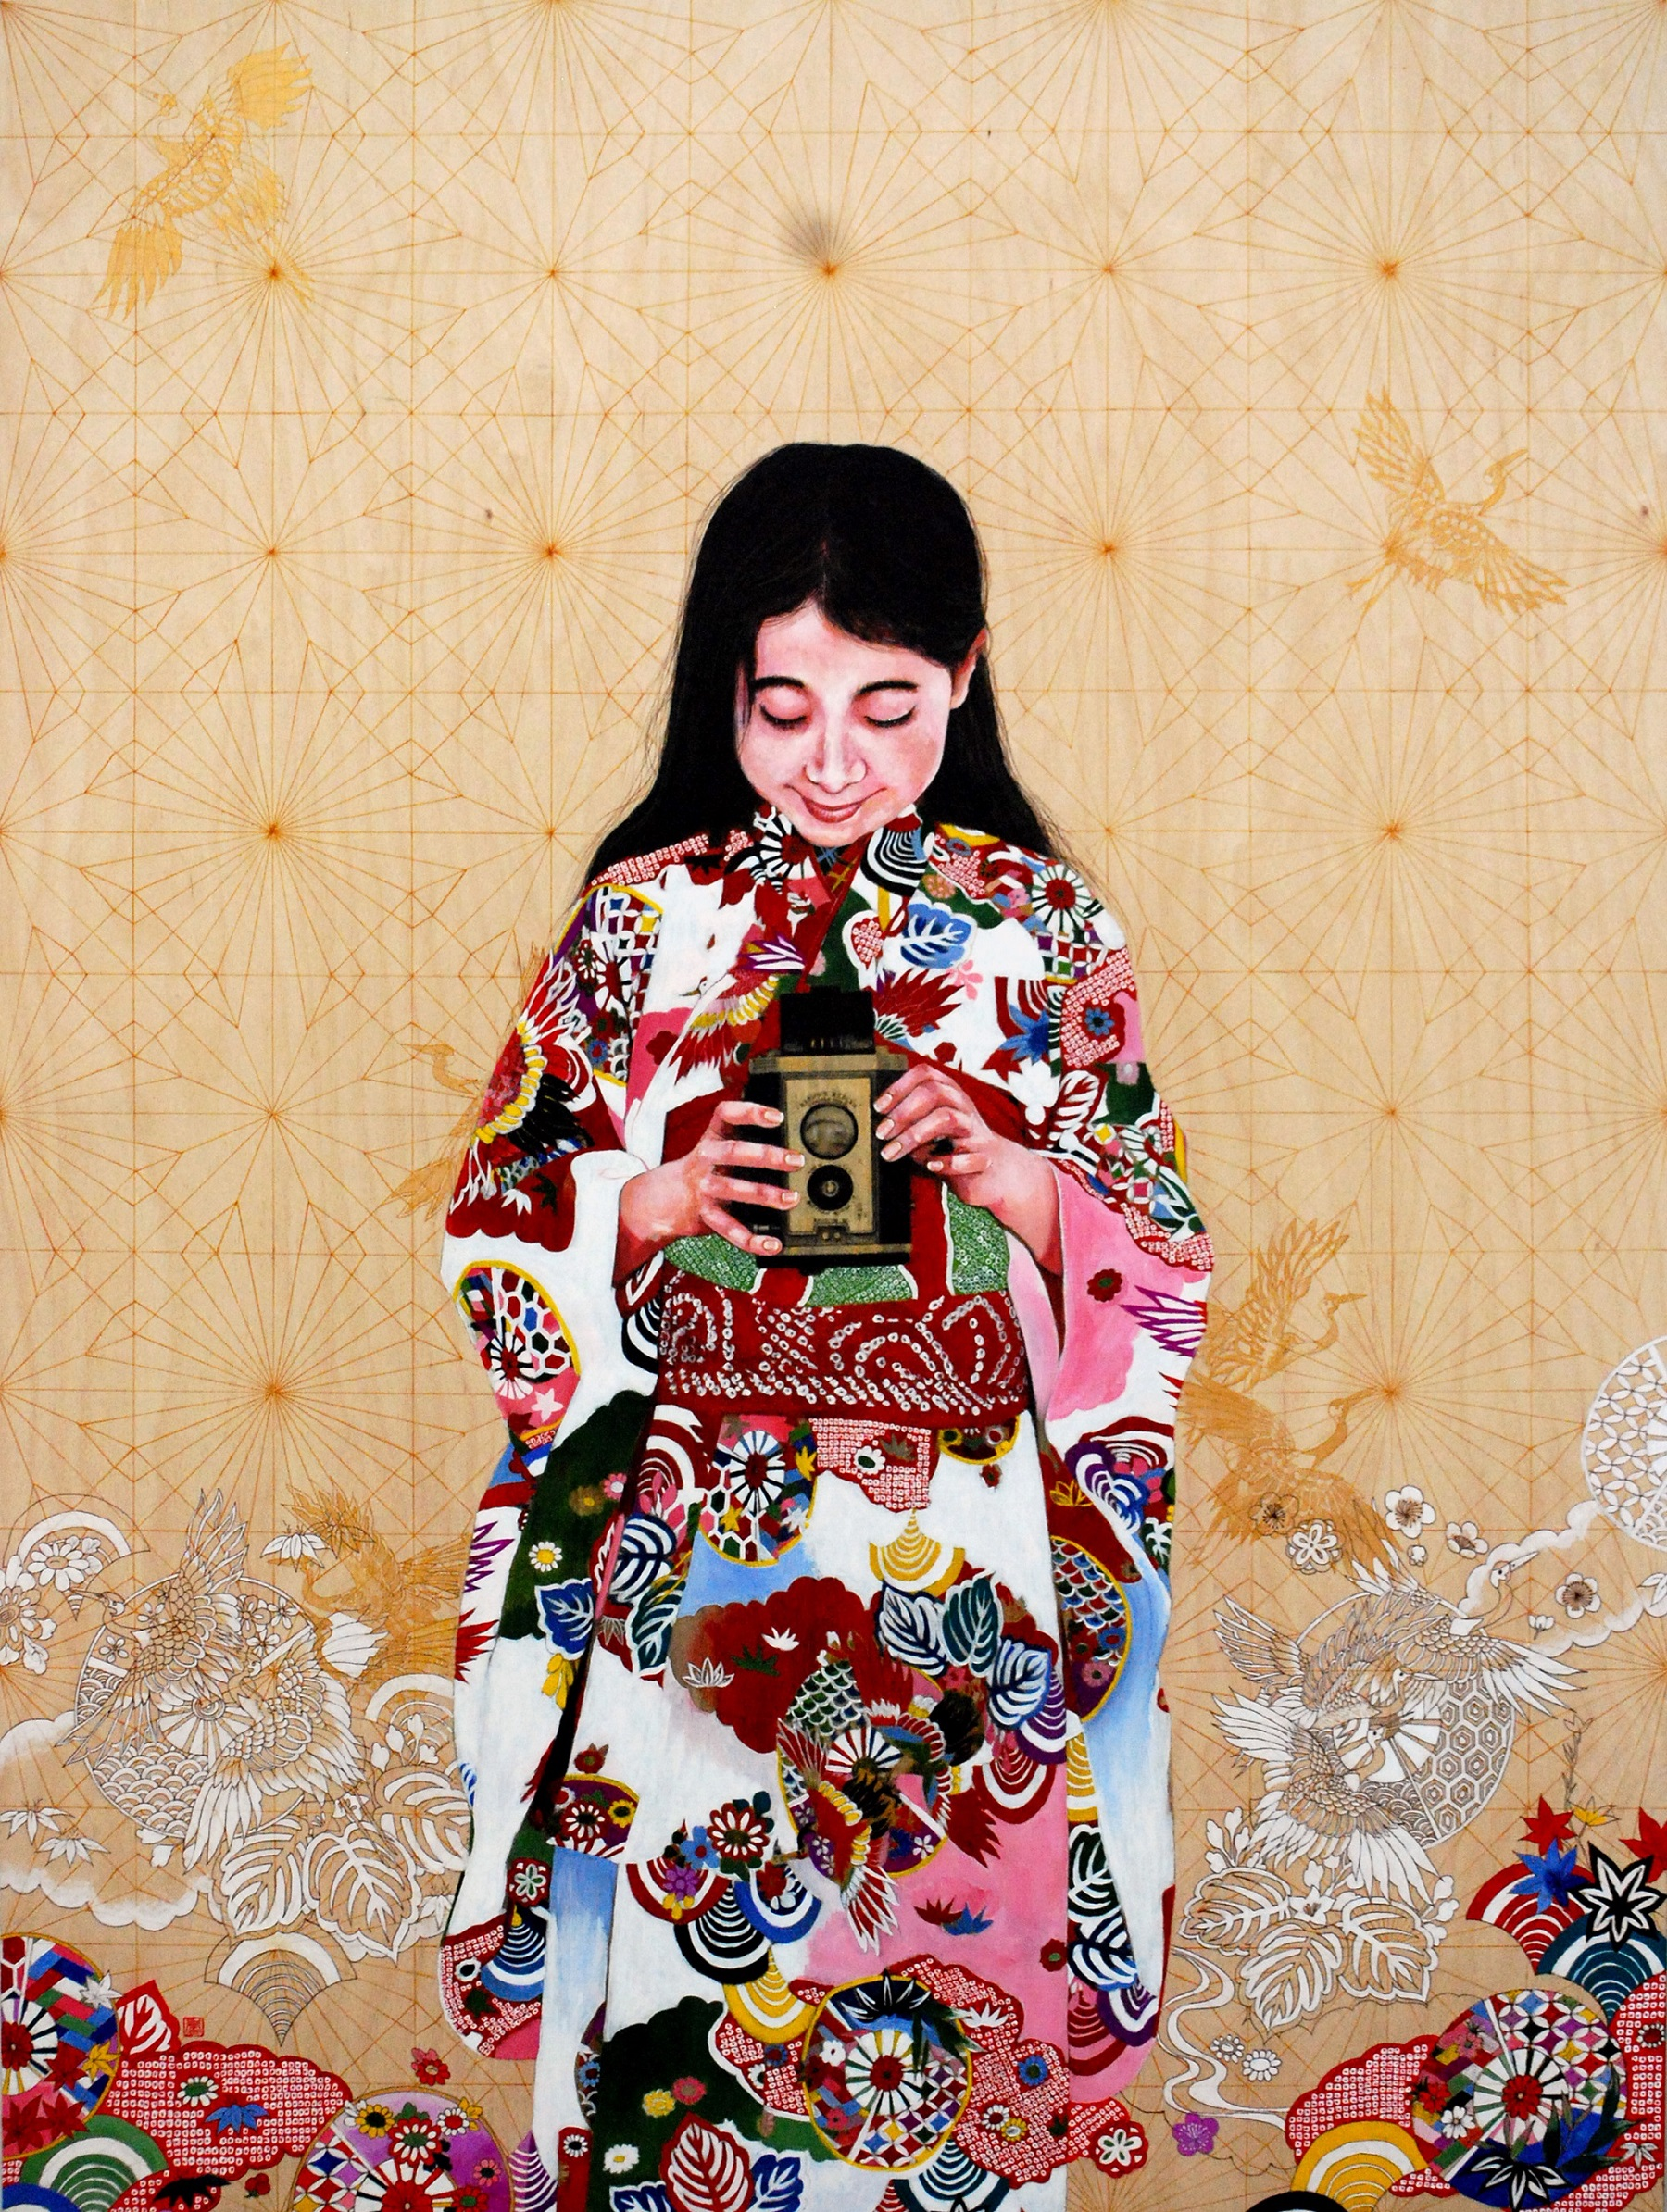 Viewfinder II, 2019 Kae Sasaki oil and gold-leaf on panel, 122 x 91 cm